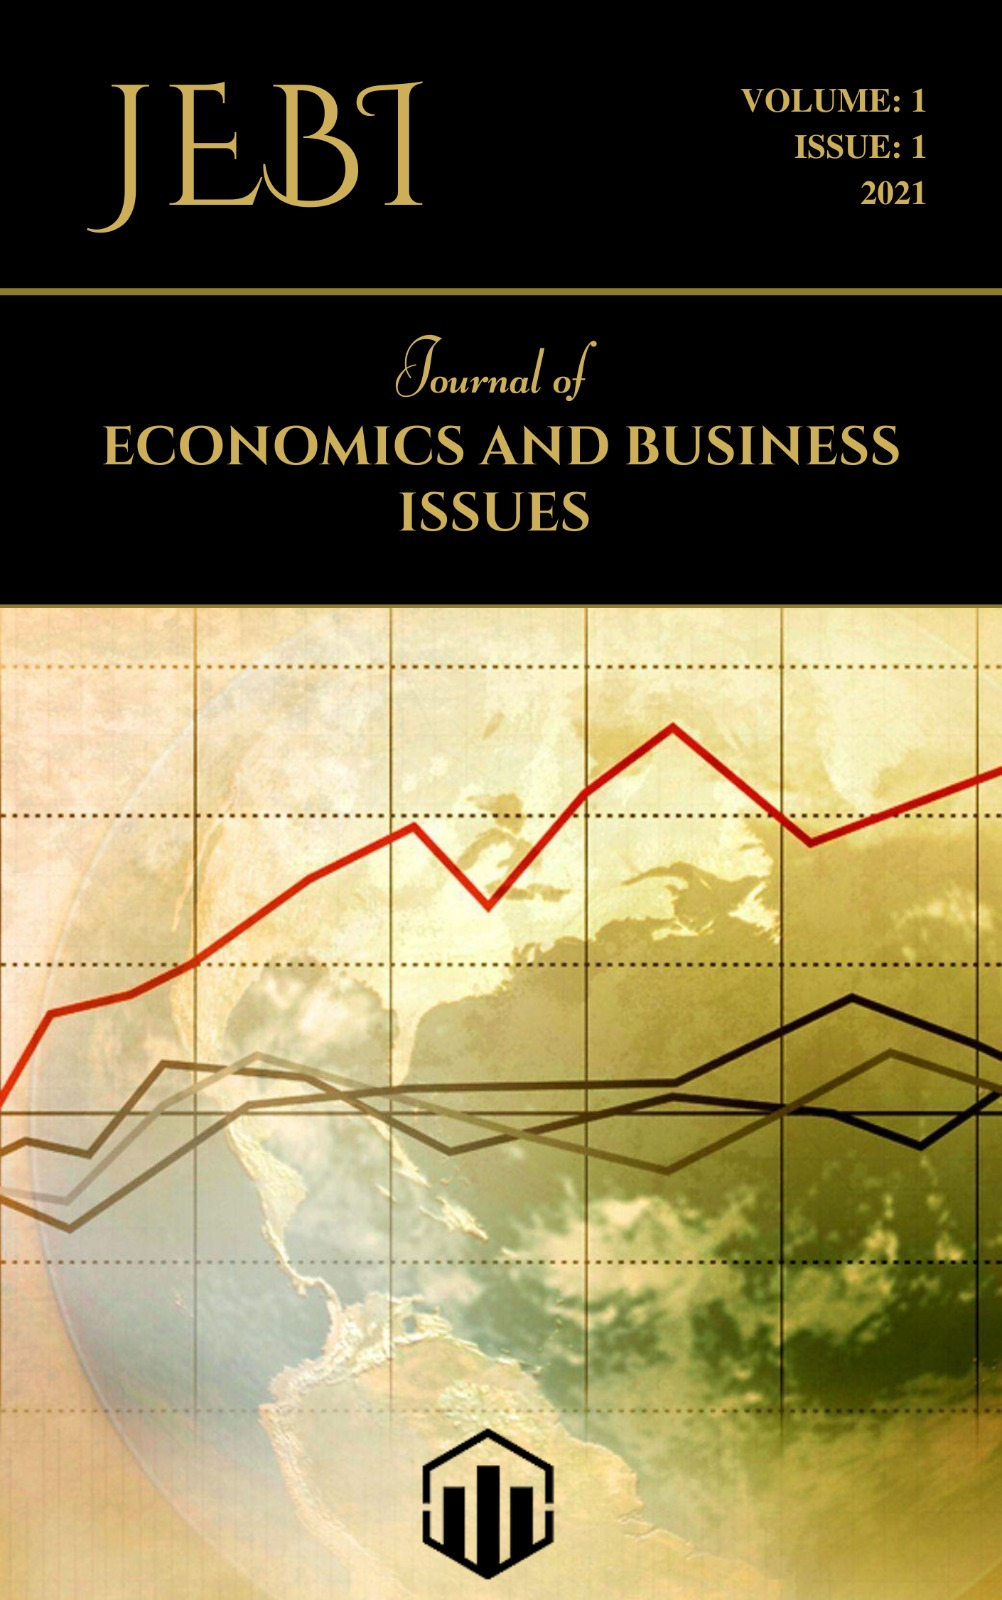 View Vol. 1 No. 1 (2021): Journal of Economics and Business Issues